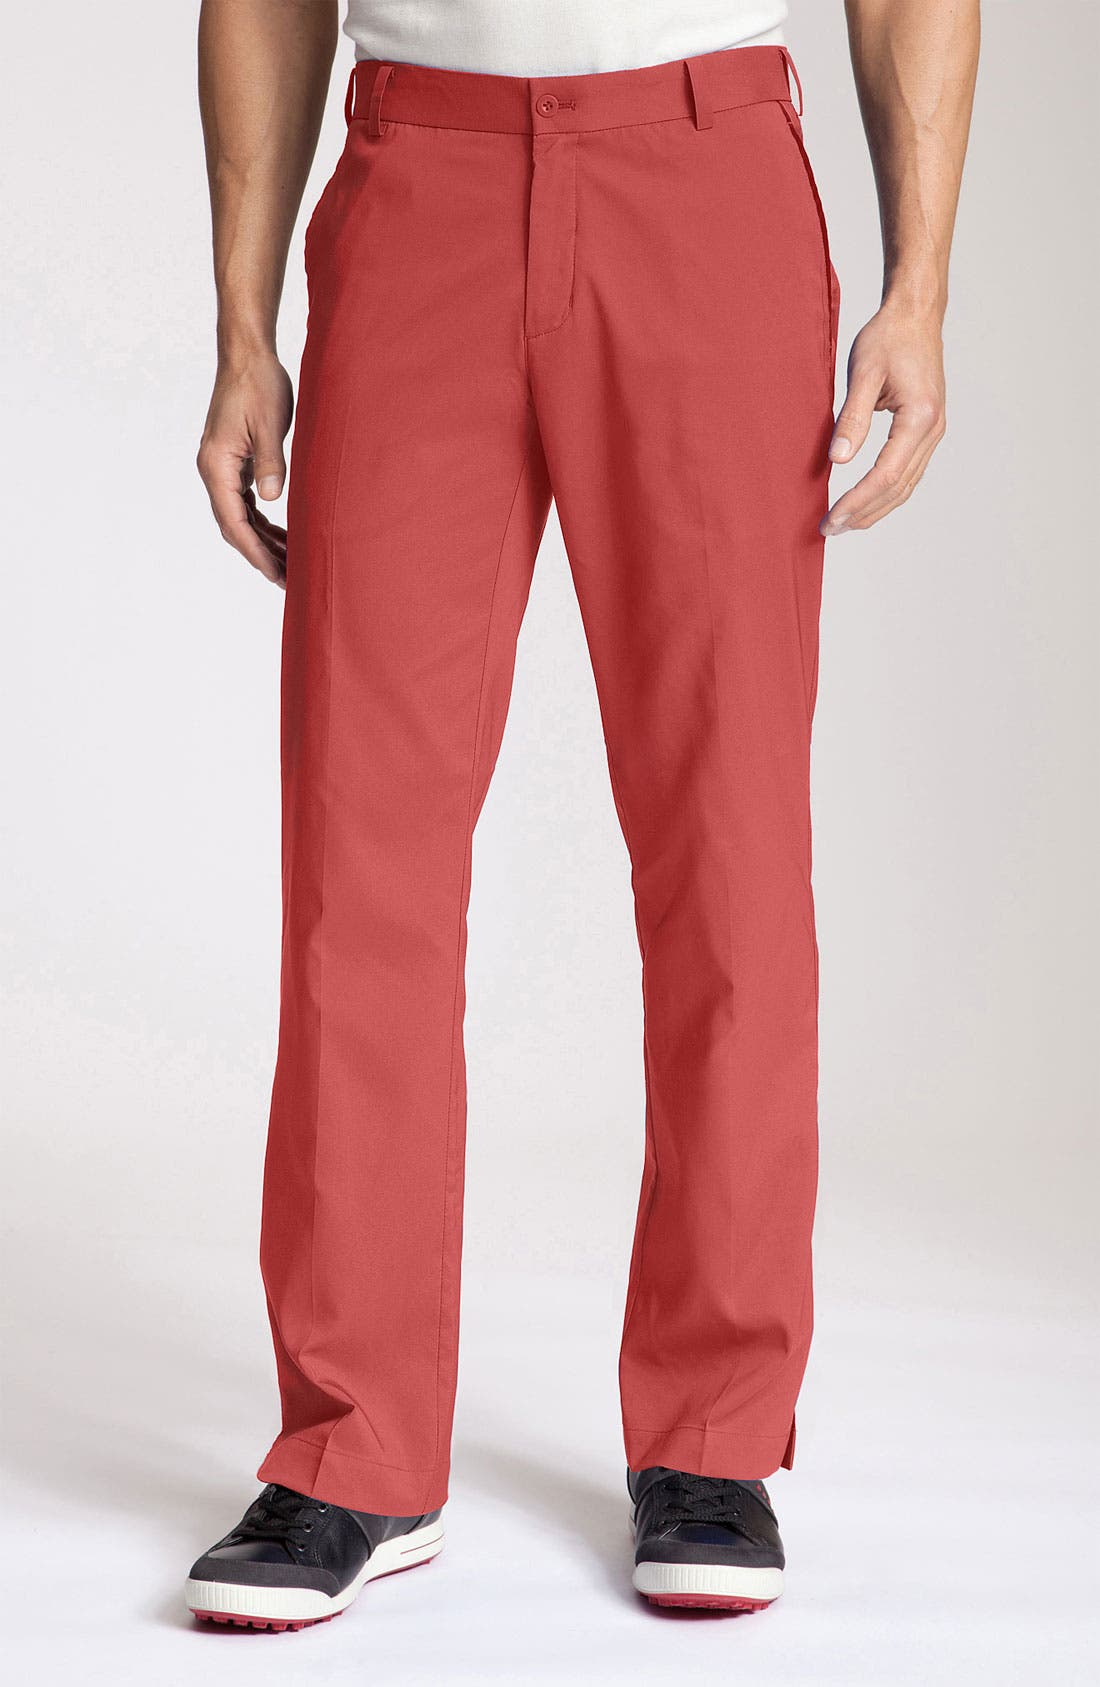 Alternate Image 1 Selected - Nike Golf  'Mod Tech' Flat Front Golf Pants